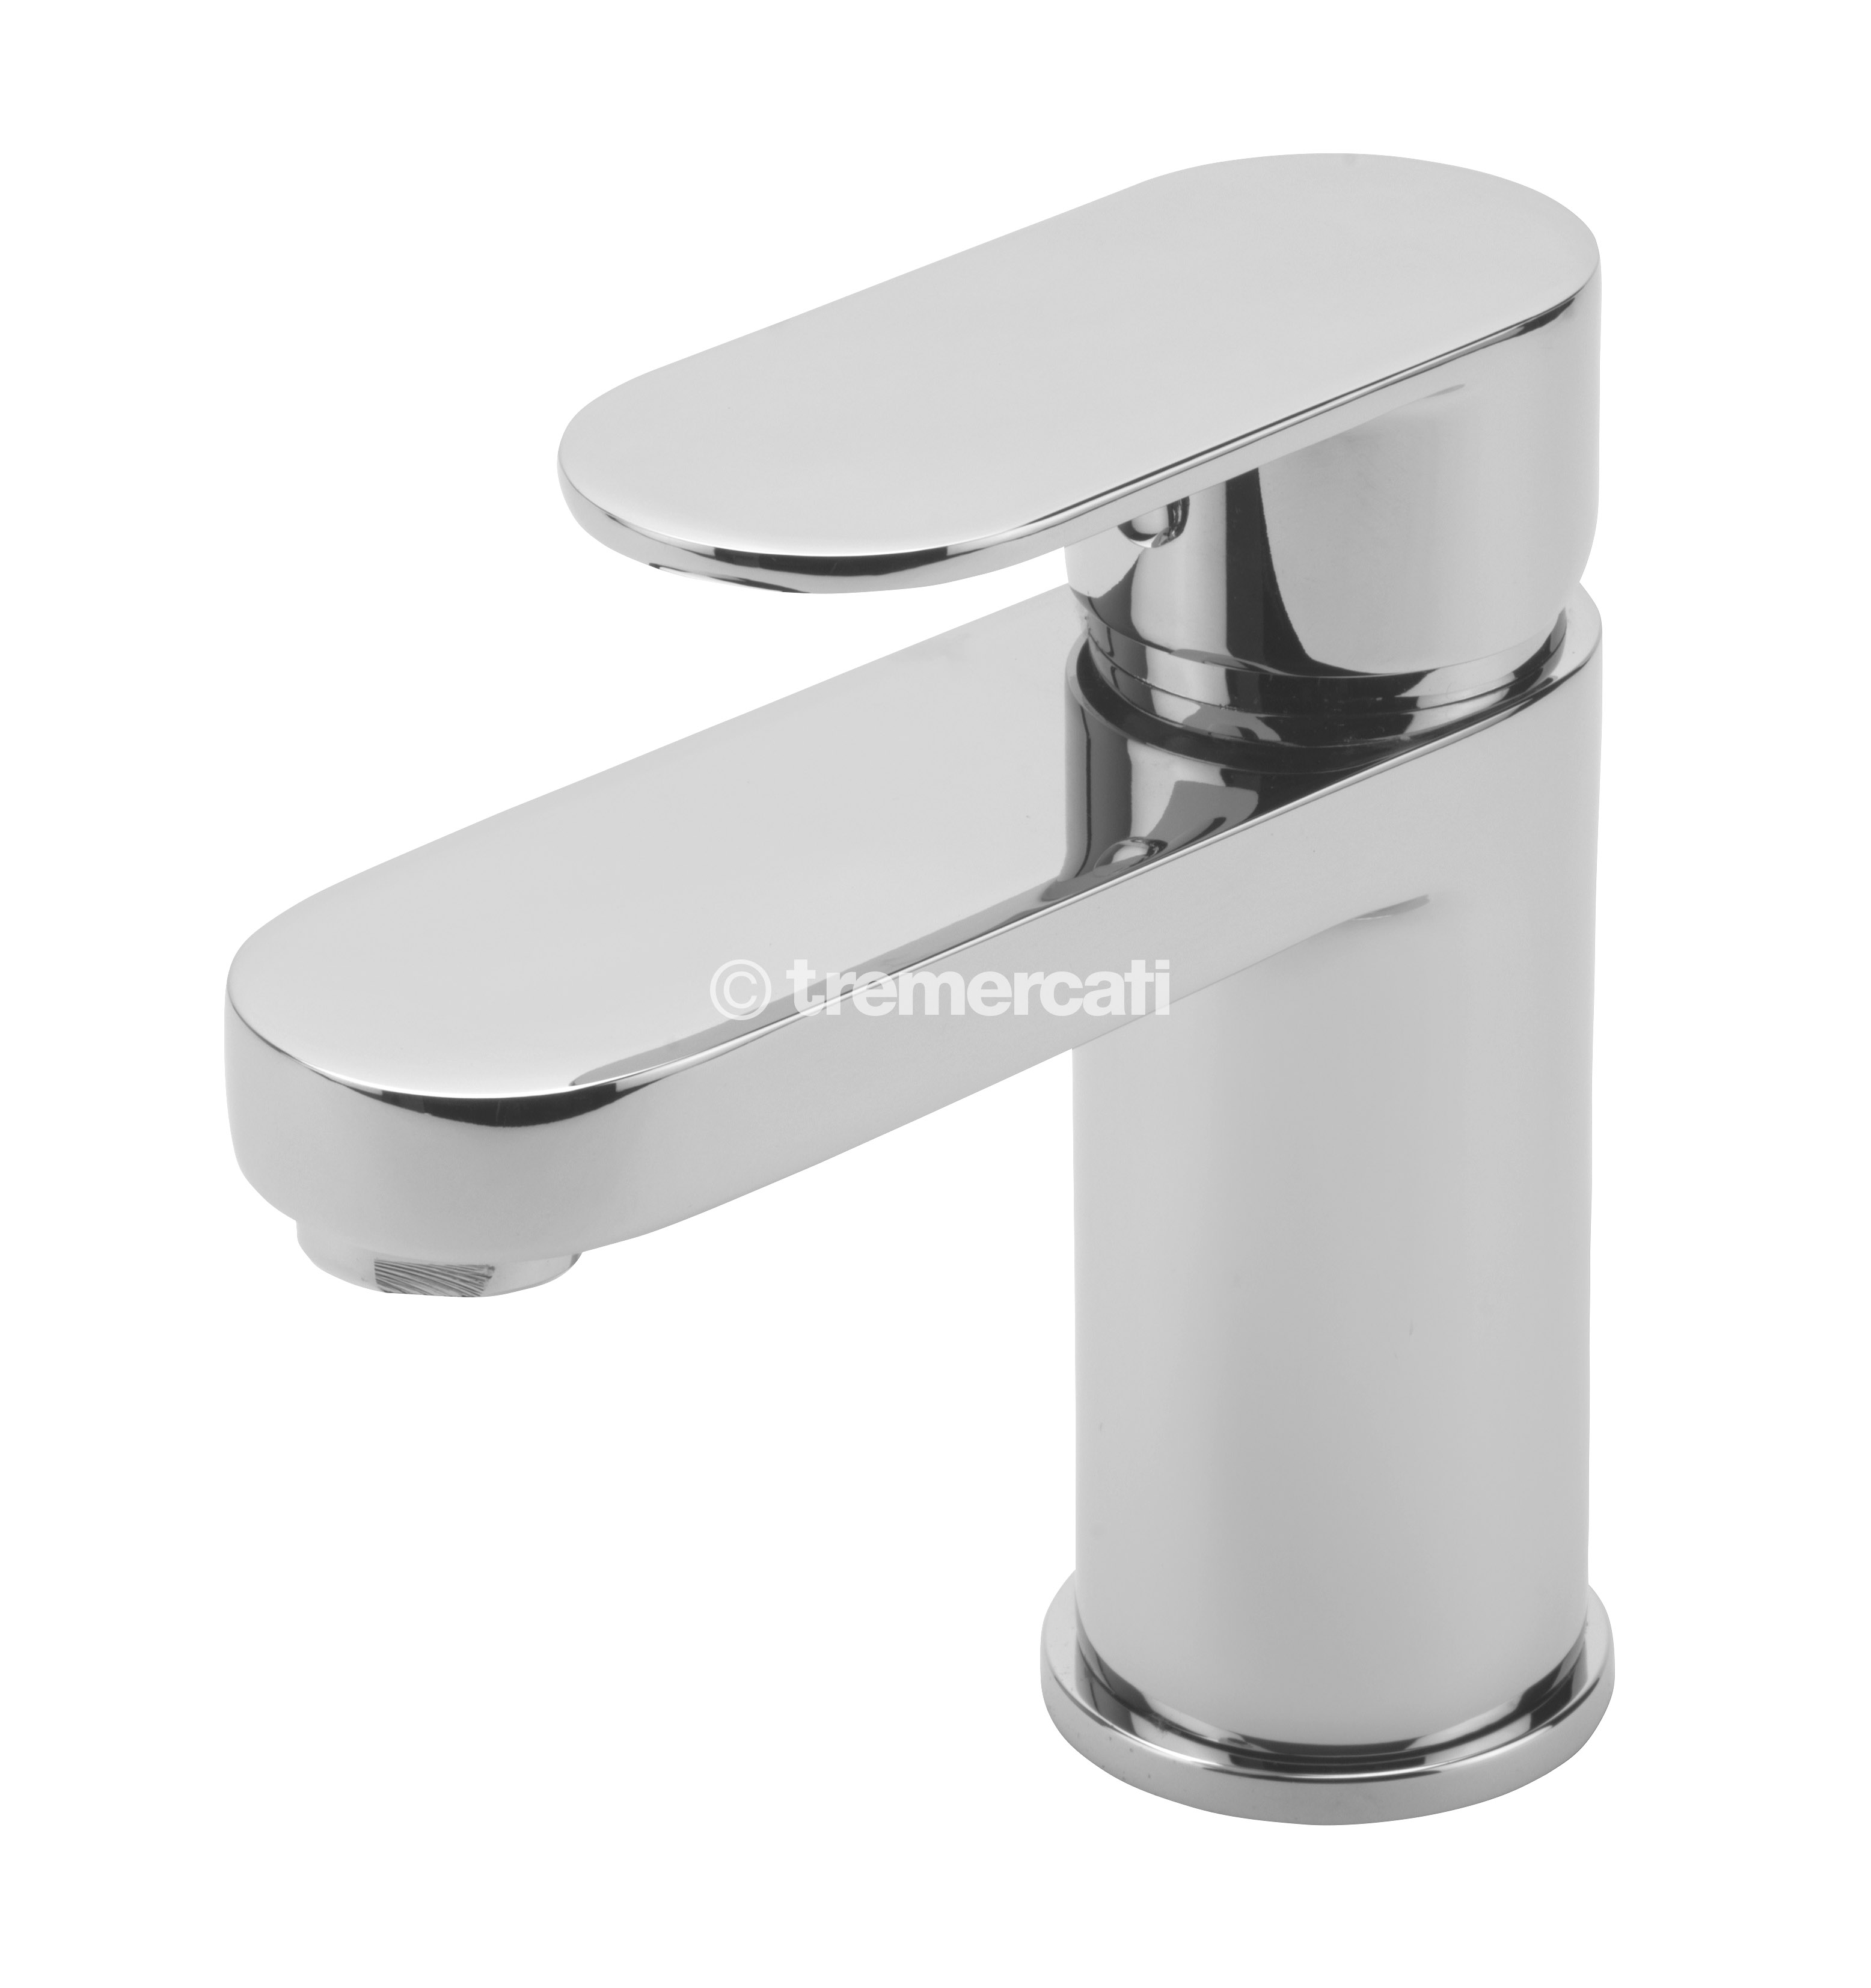 TRE MERCATI GECO MONO BASIN MIXER WITH CLICK CLACK WASTE CHROME PLATED